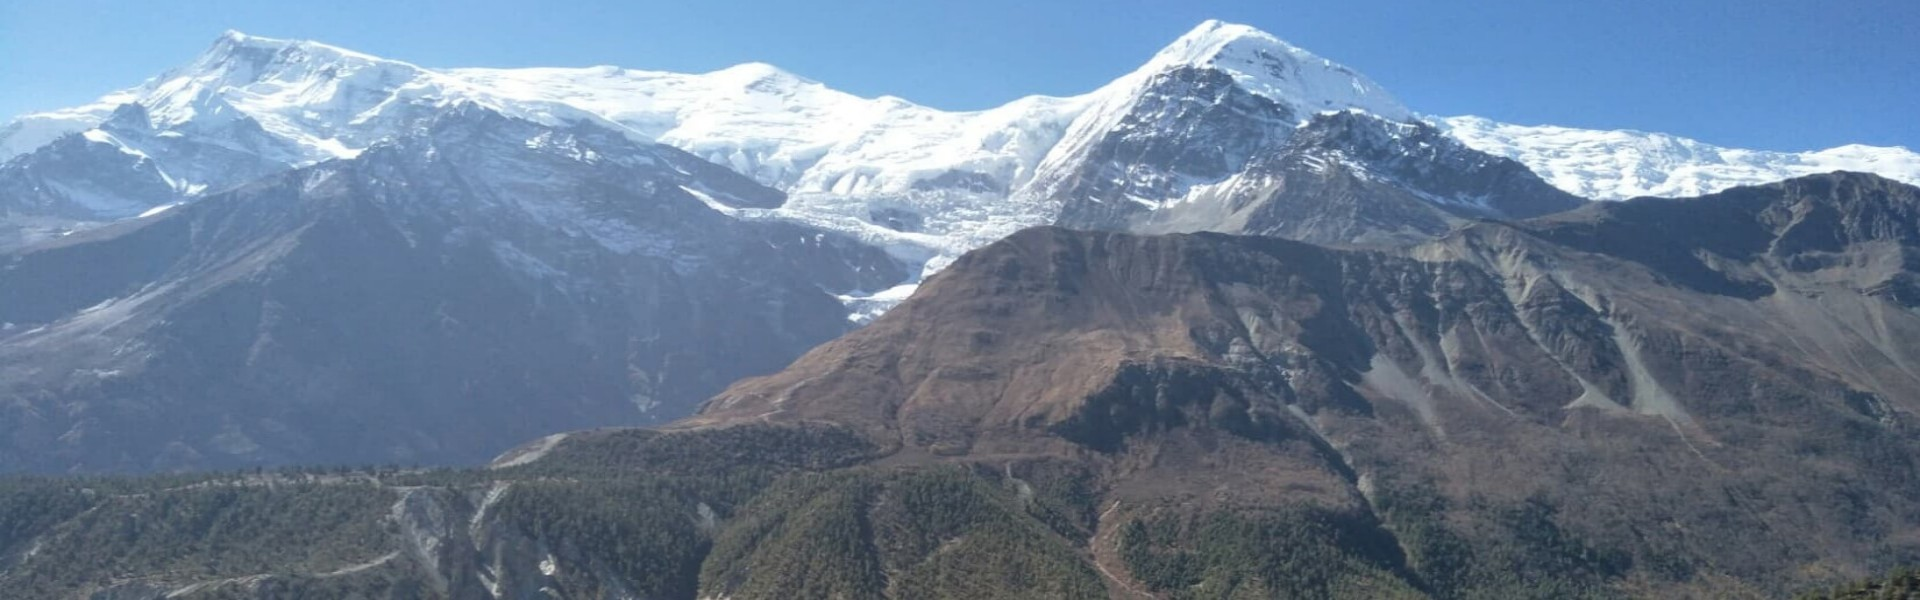 Annapurna Circuit Trek in September